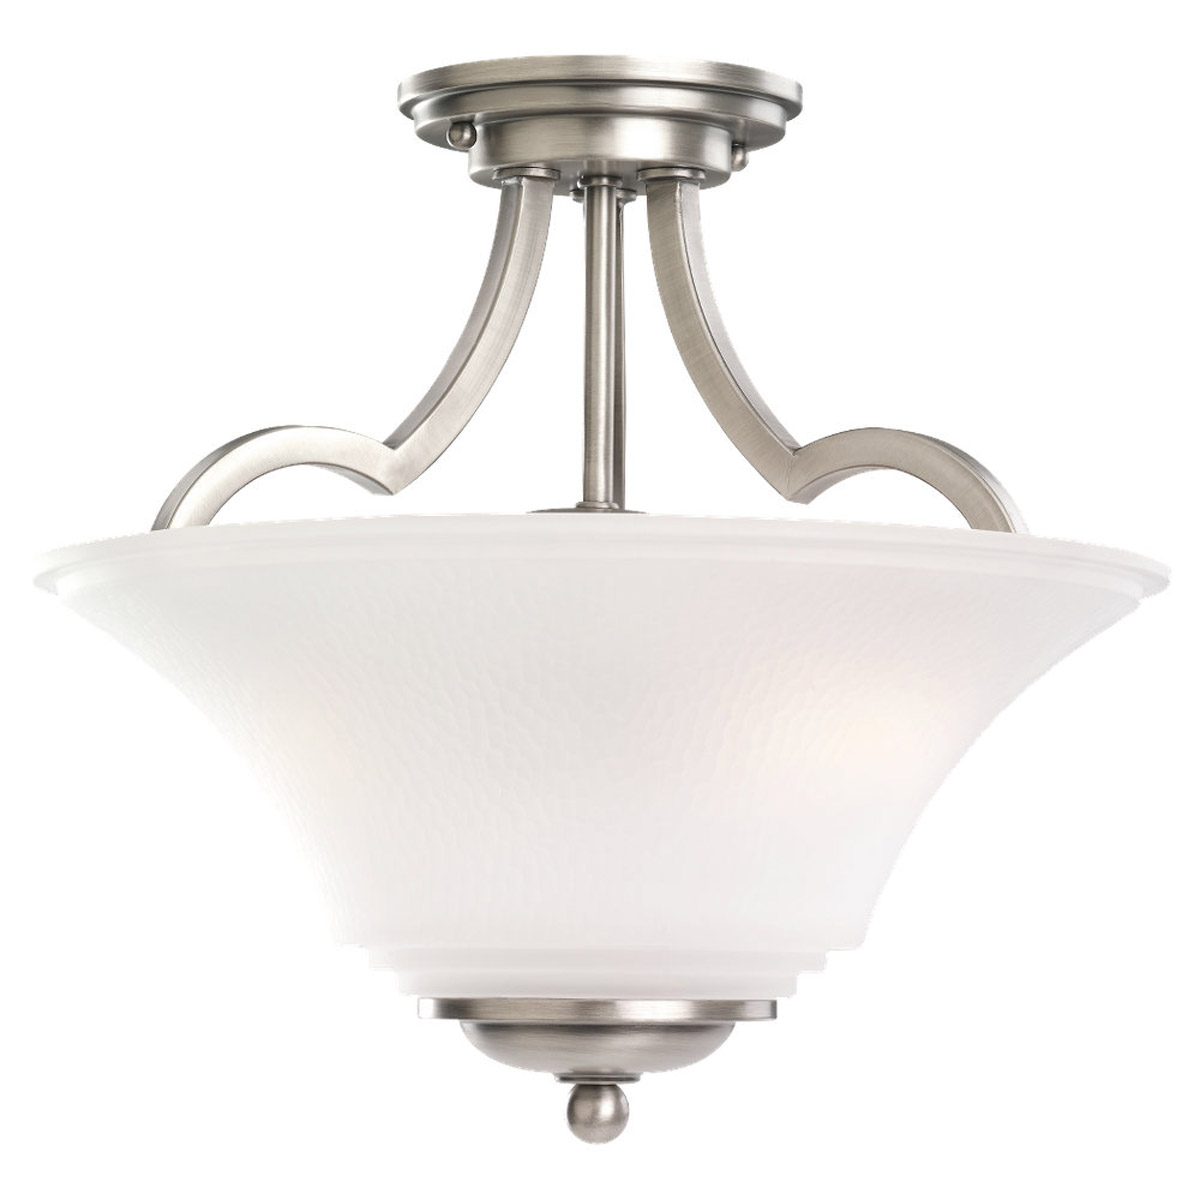 Sea Gull Somerton 2 Light Semi-Flush Convertible Pendant in Antique Brushed Nickel 77375BLE-965